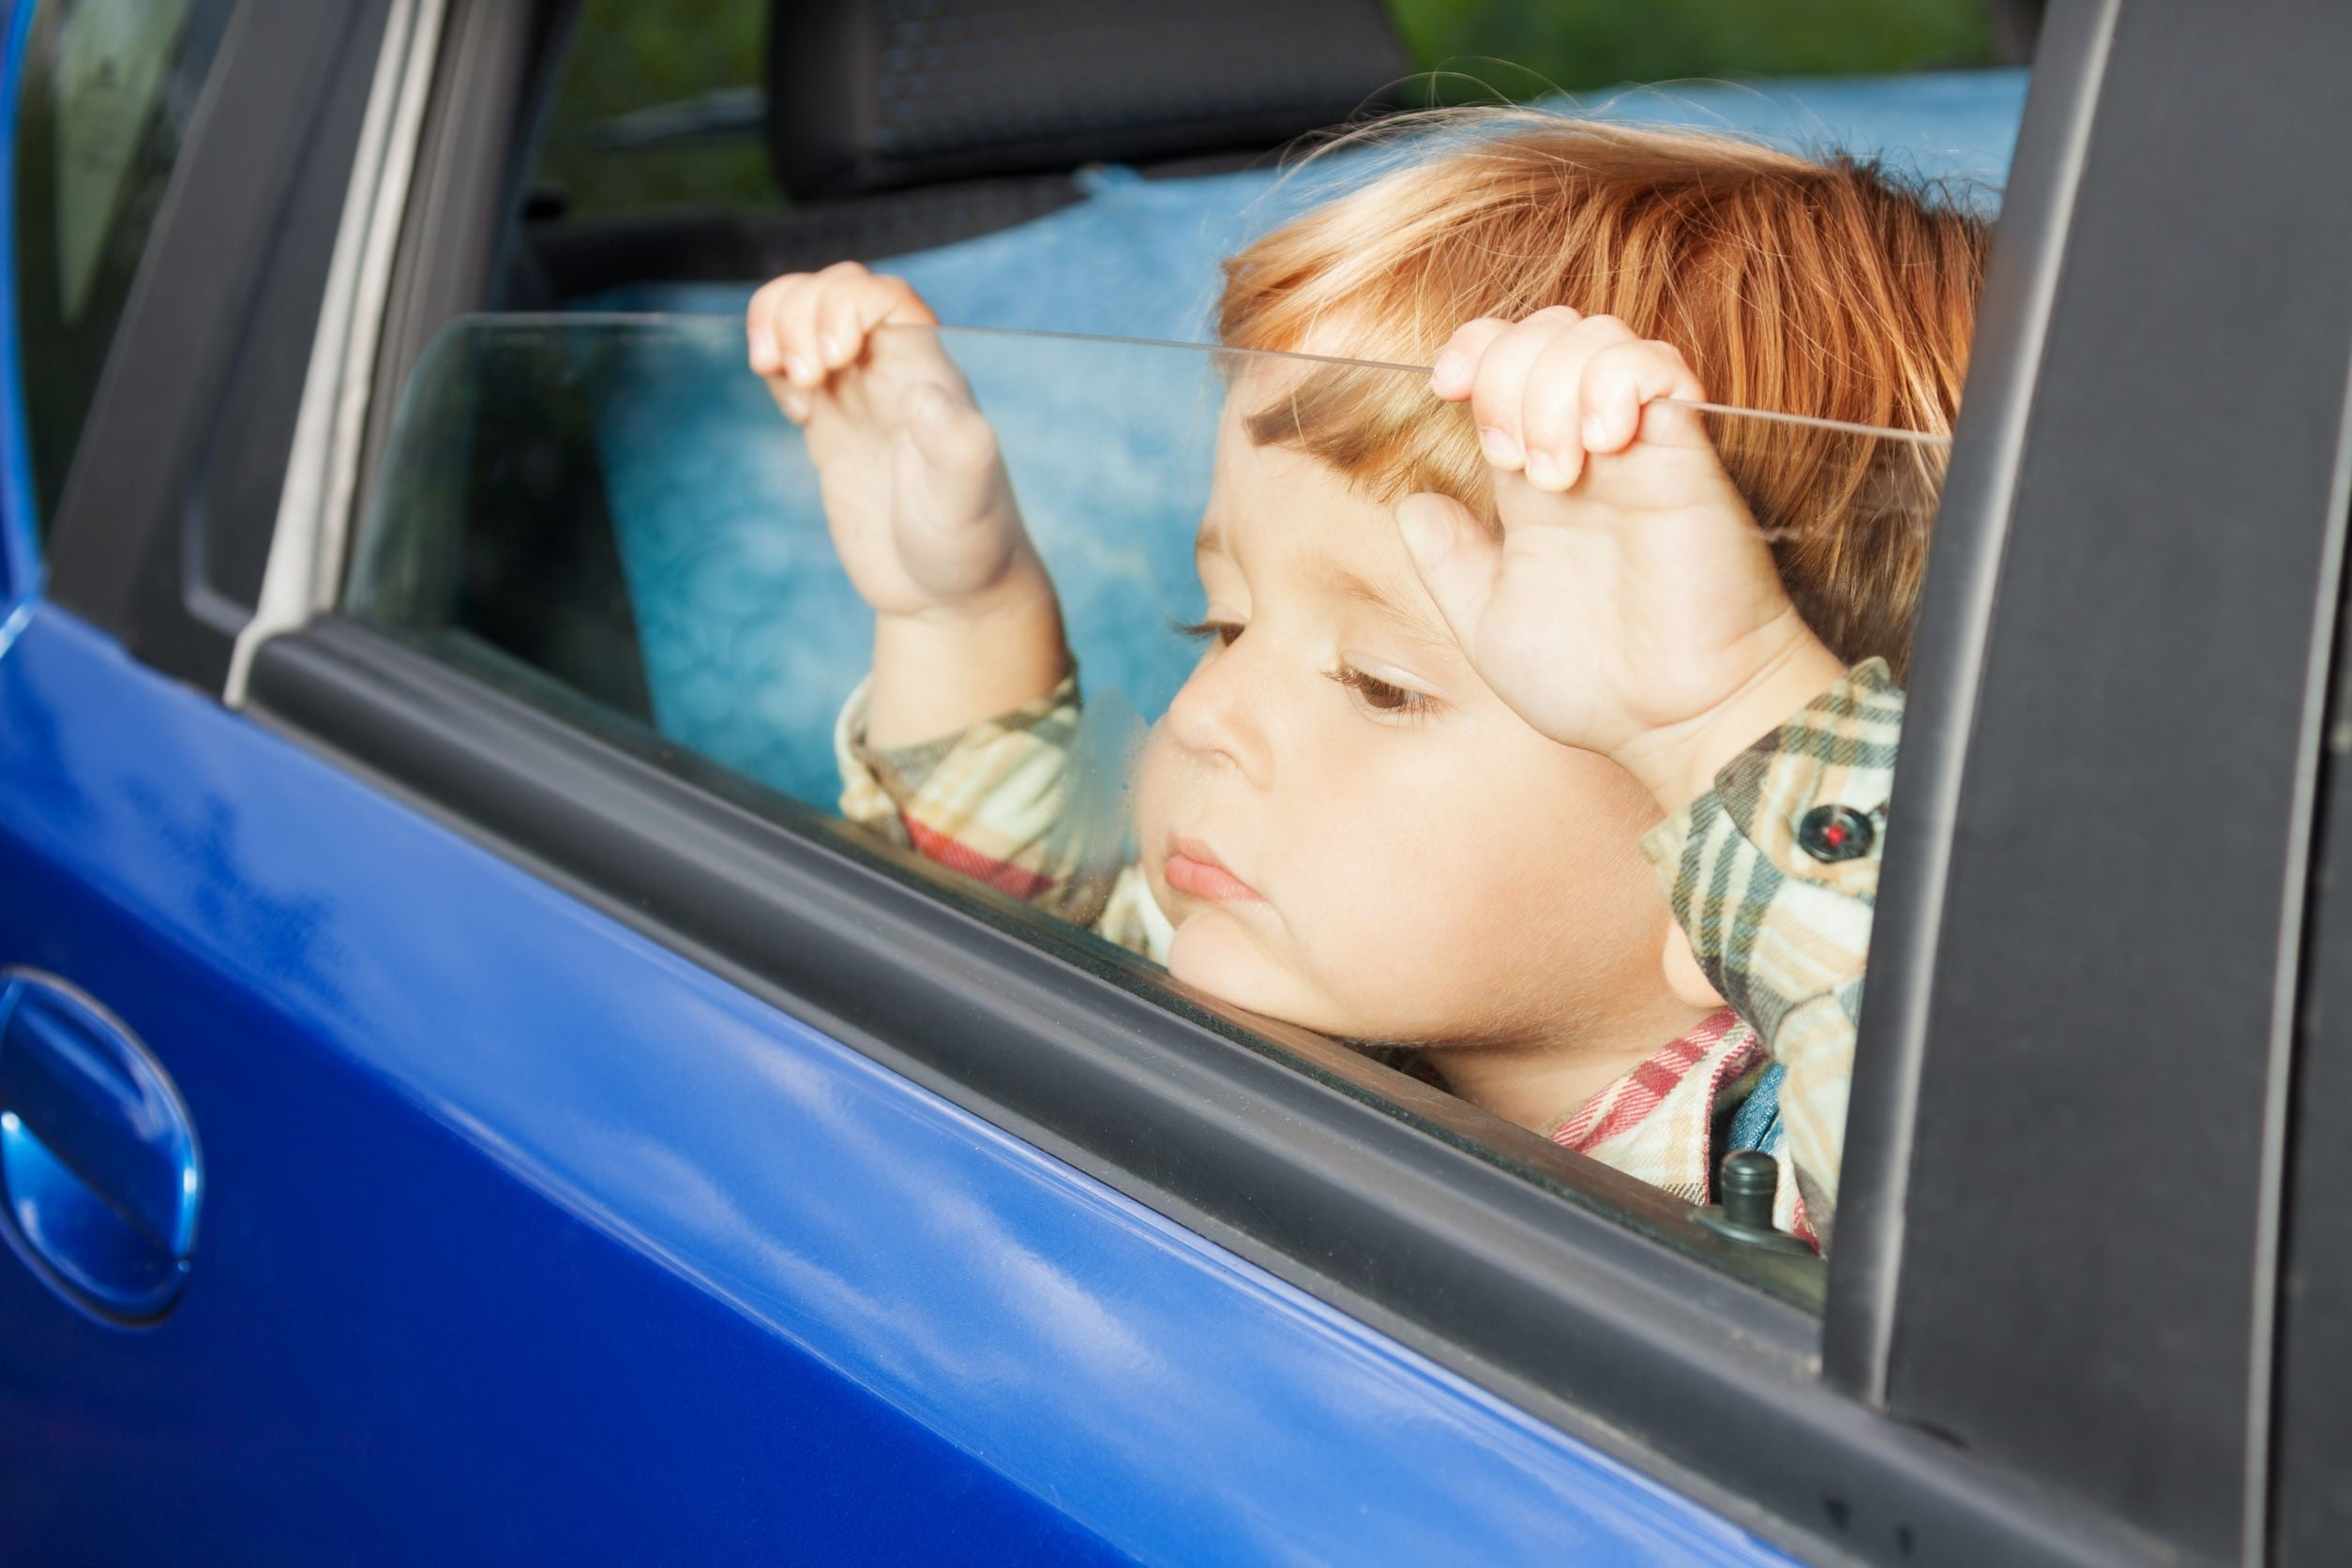 Kids - The Most Powerless Victims of Car Crashes